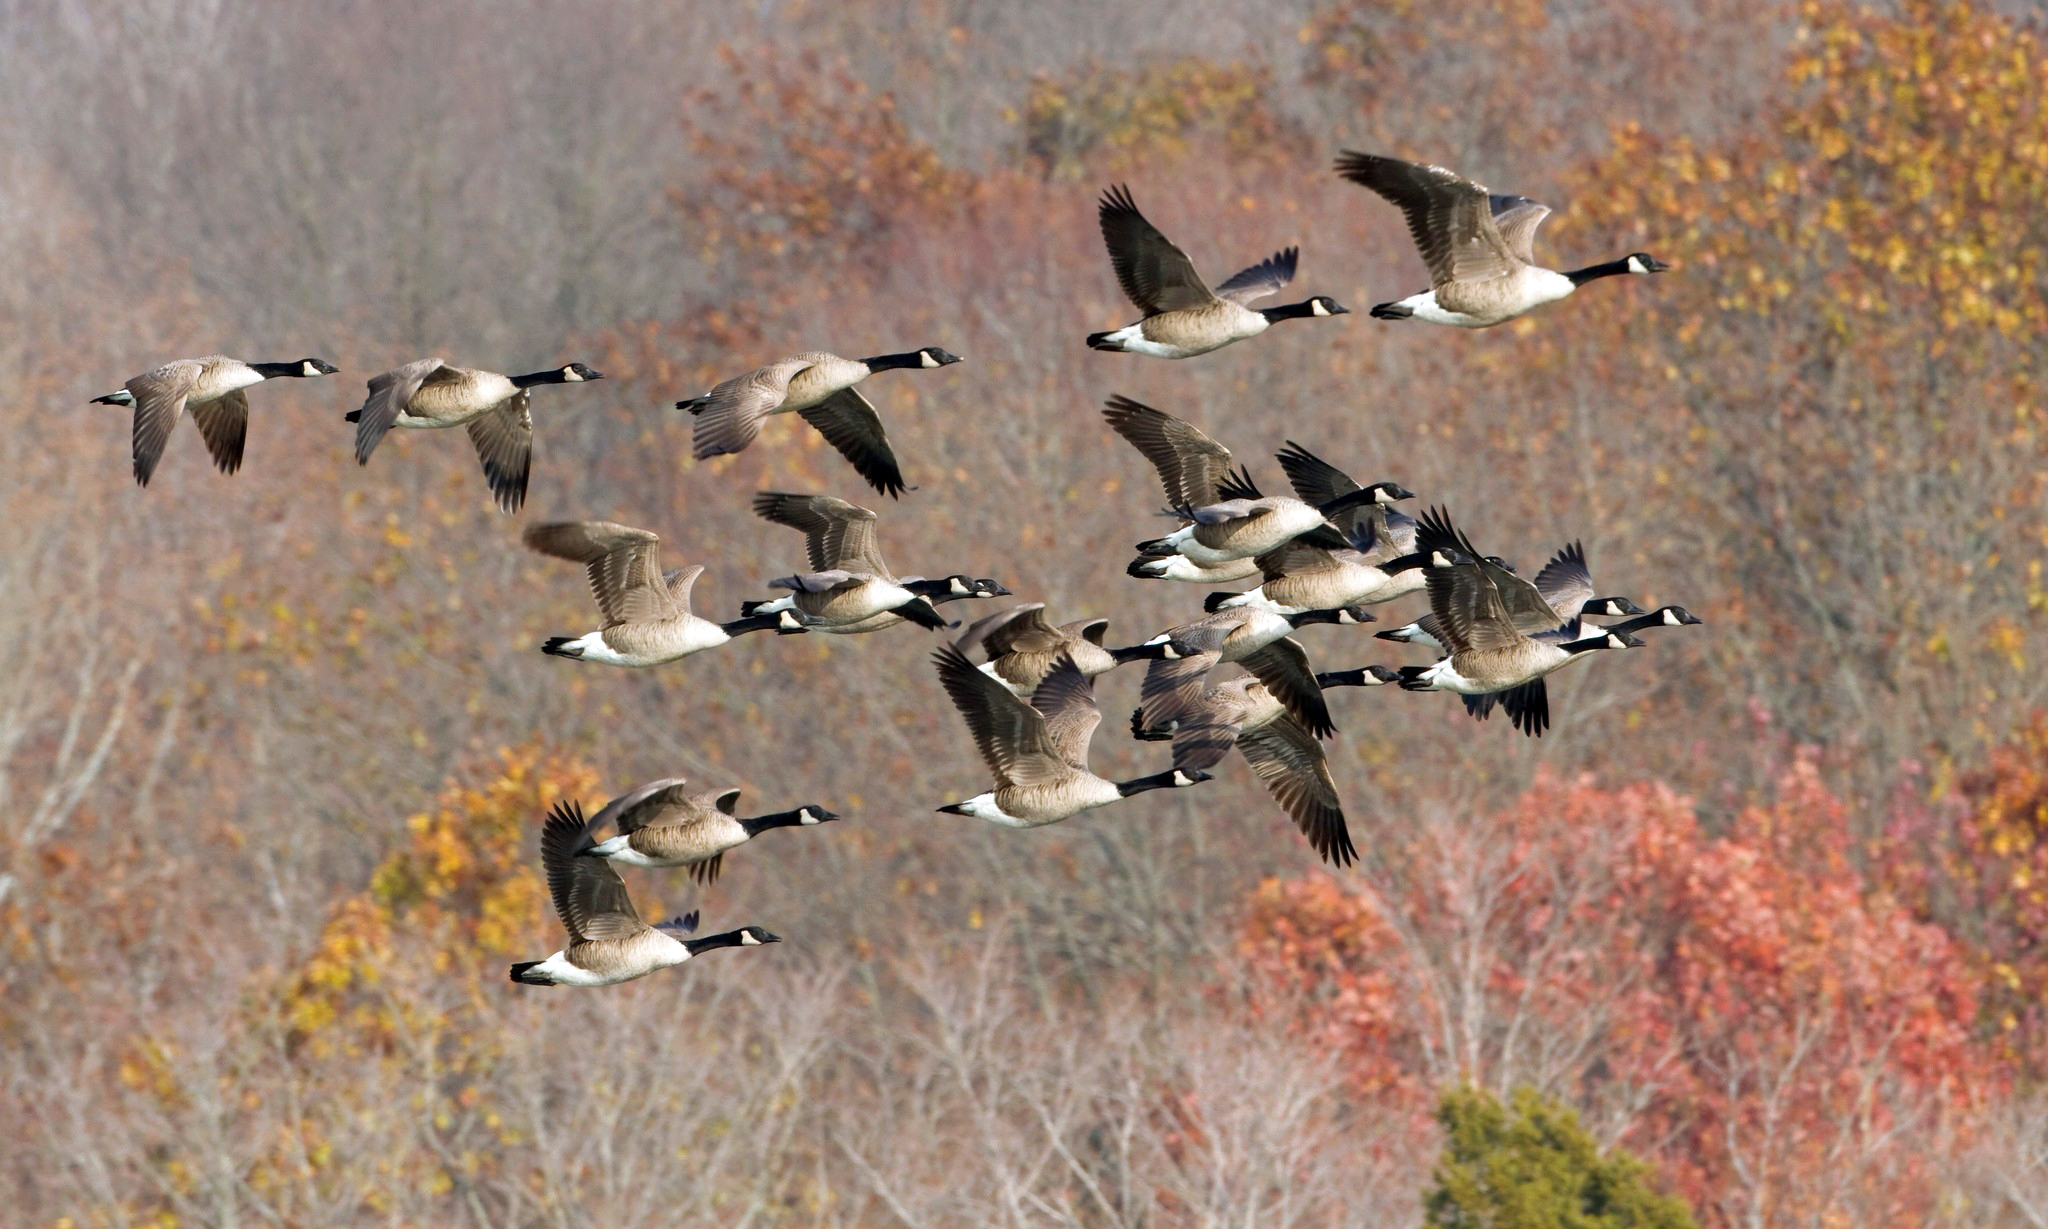 Fall Wallpaper With Animals Geese Goose Autumn Fall Wallpaper 2048x1229 136897